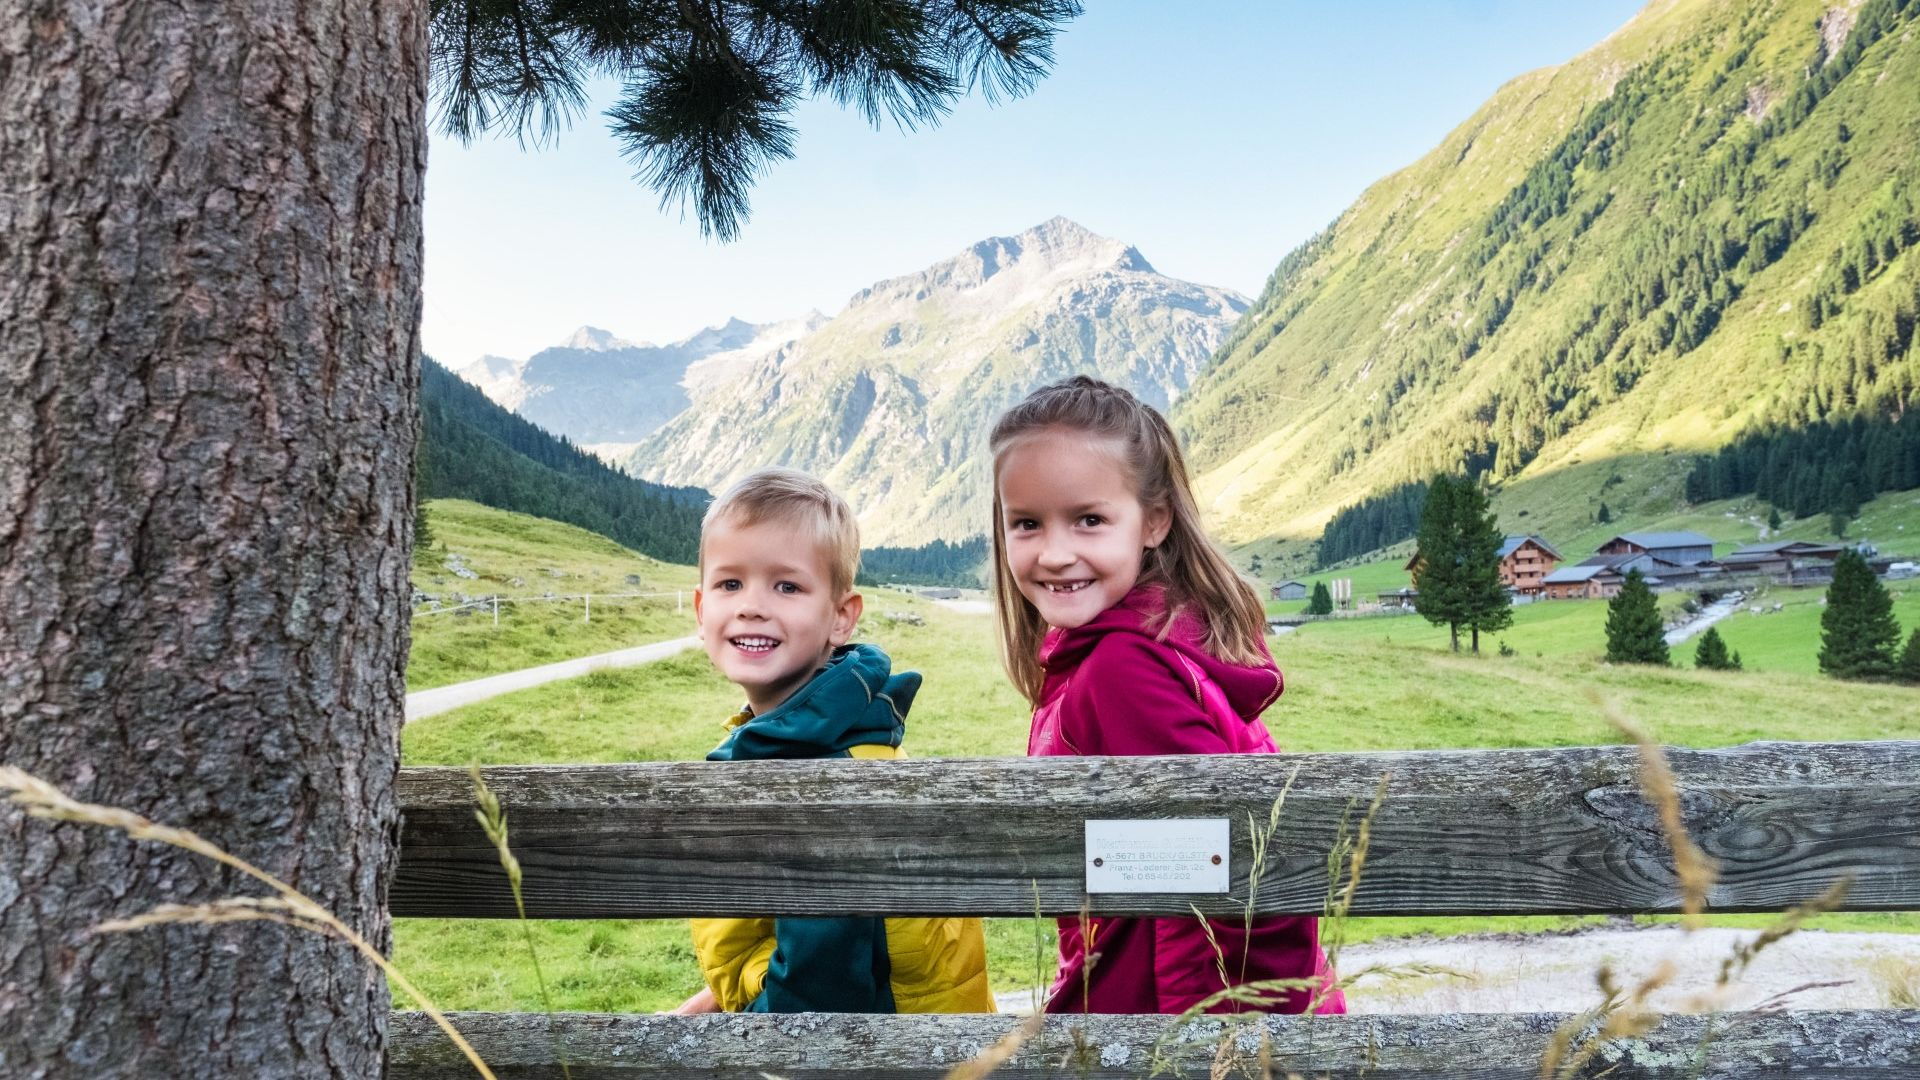 Almsommer in der Ferienregion Nationalpark Hohe Tauern